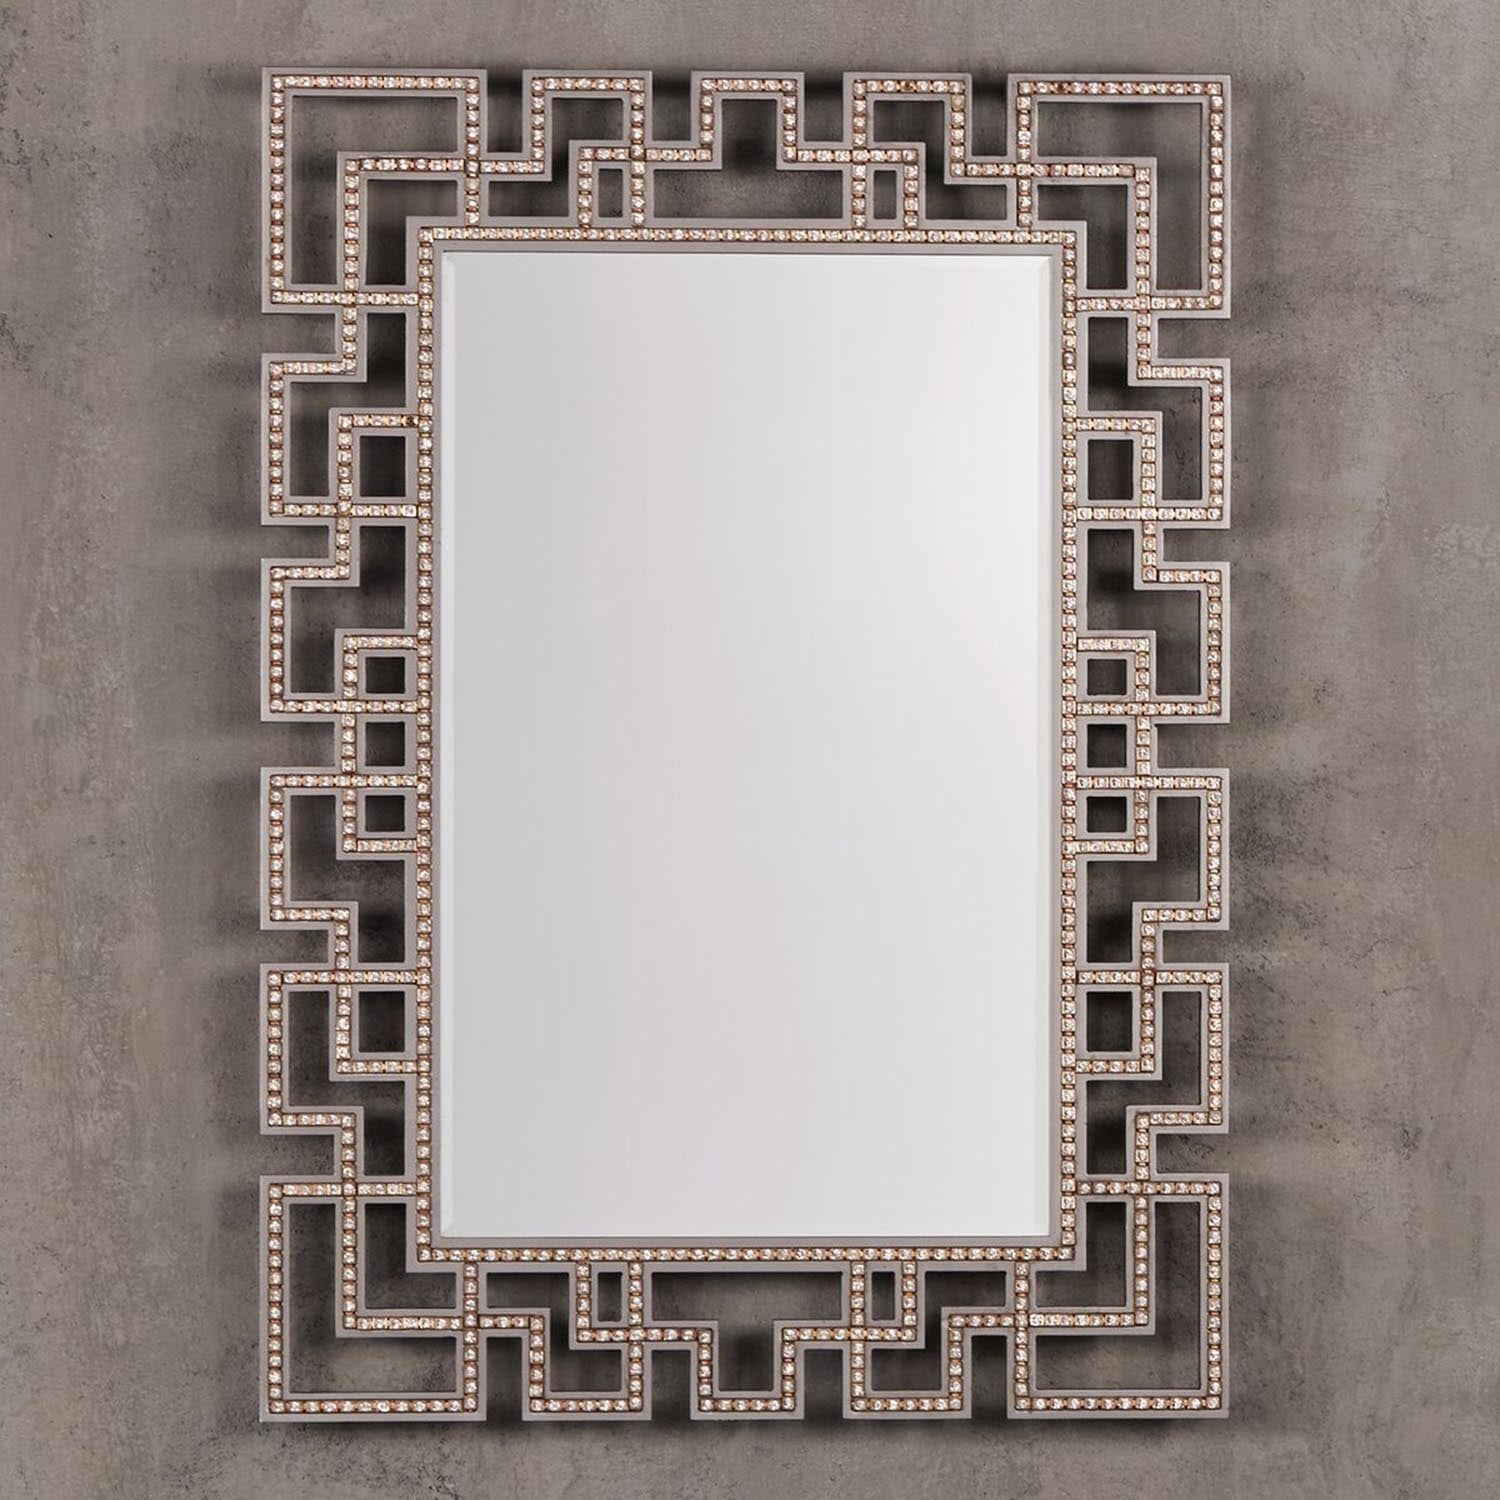 Key picture frame choice image craft decoration ideas marlowe greek key frame accent wall mirror free shipping today marlowe greek key frame accent wall jeuxipadfo Choice Image